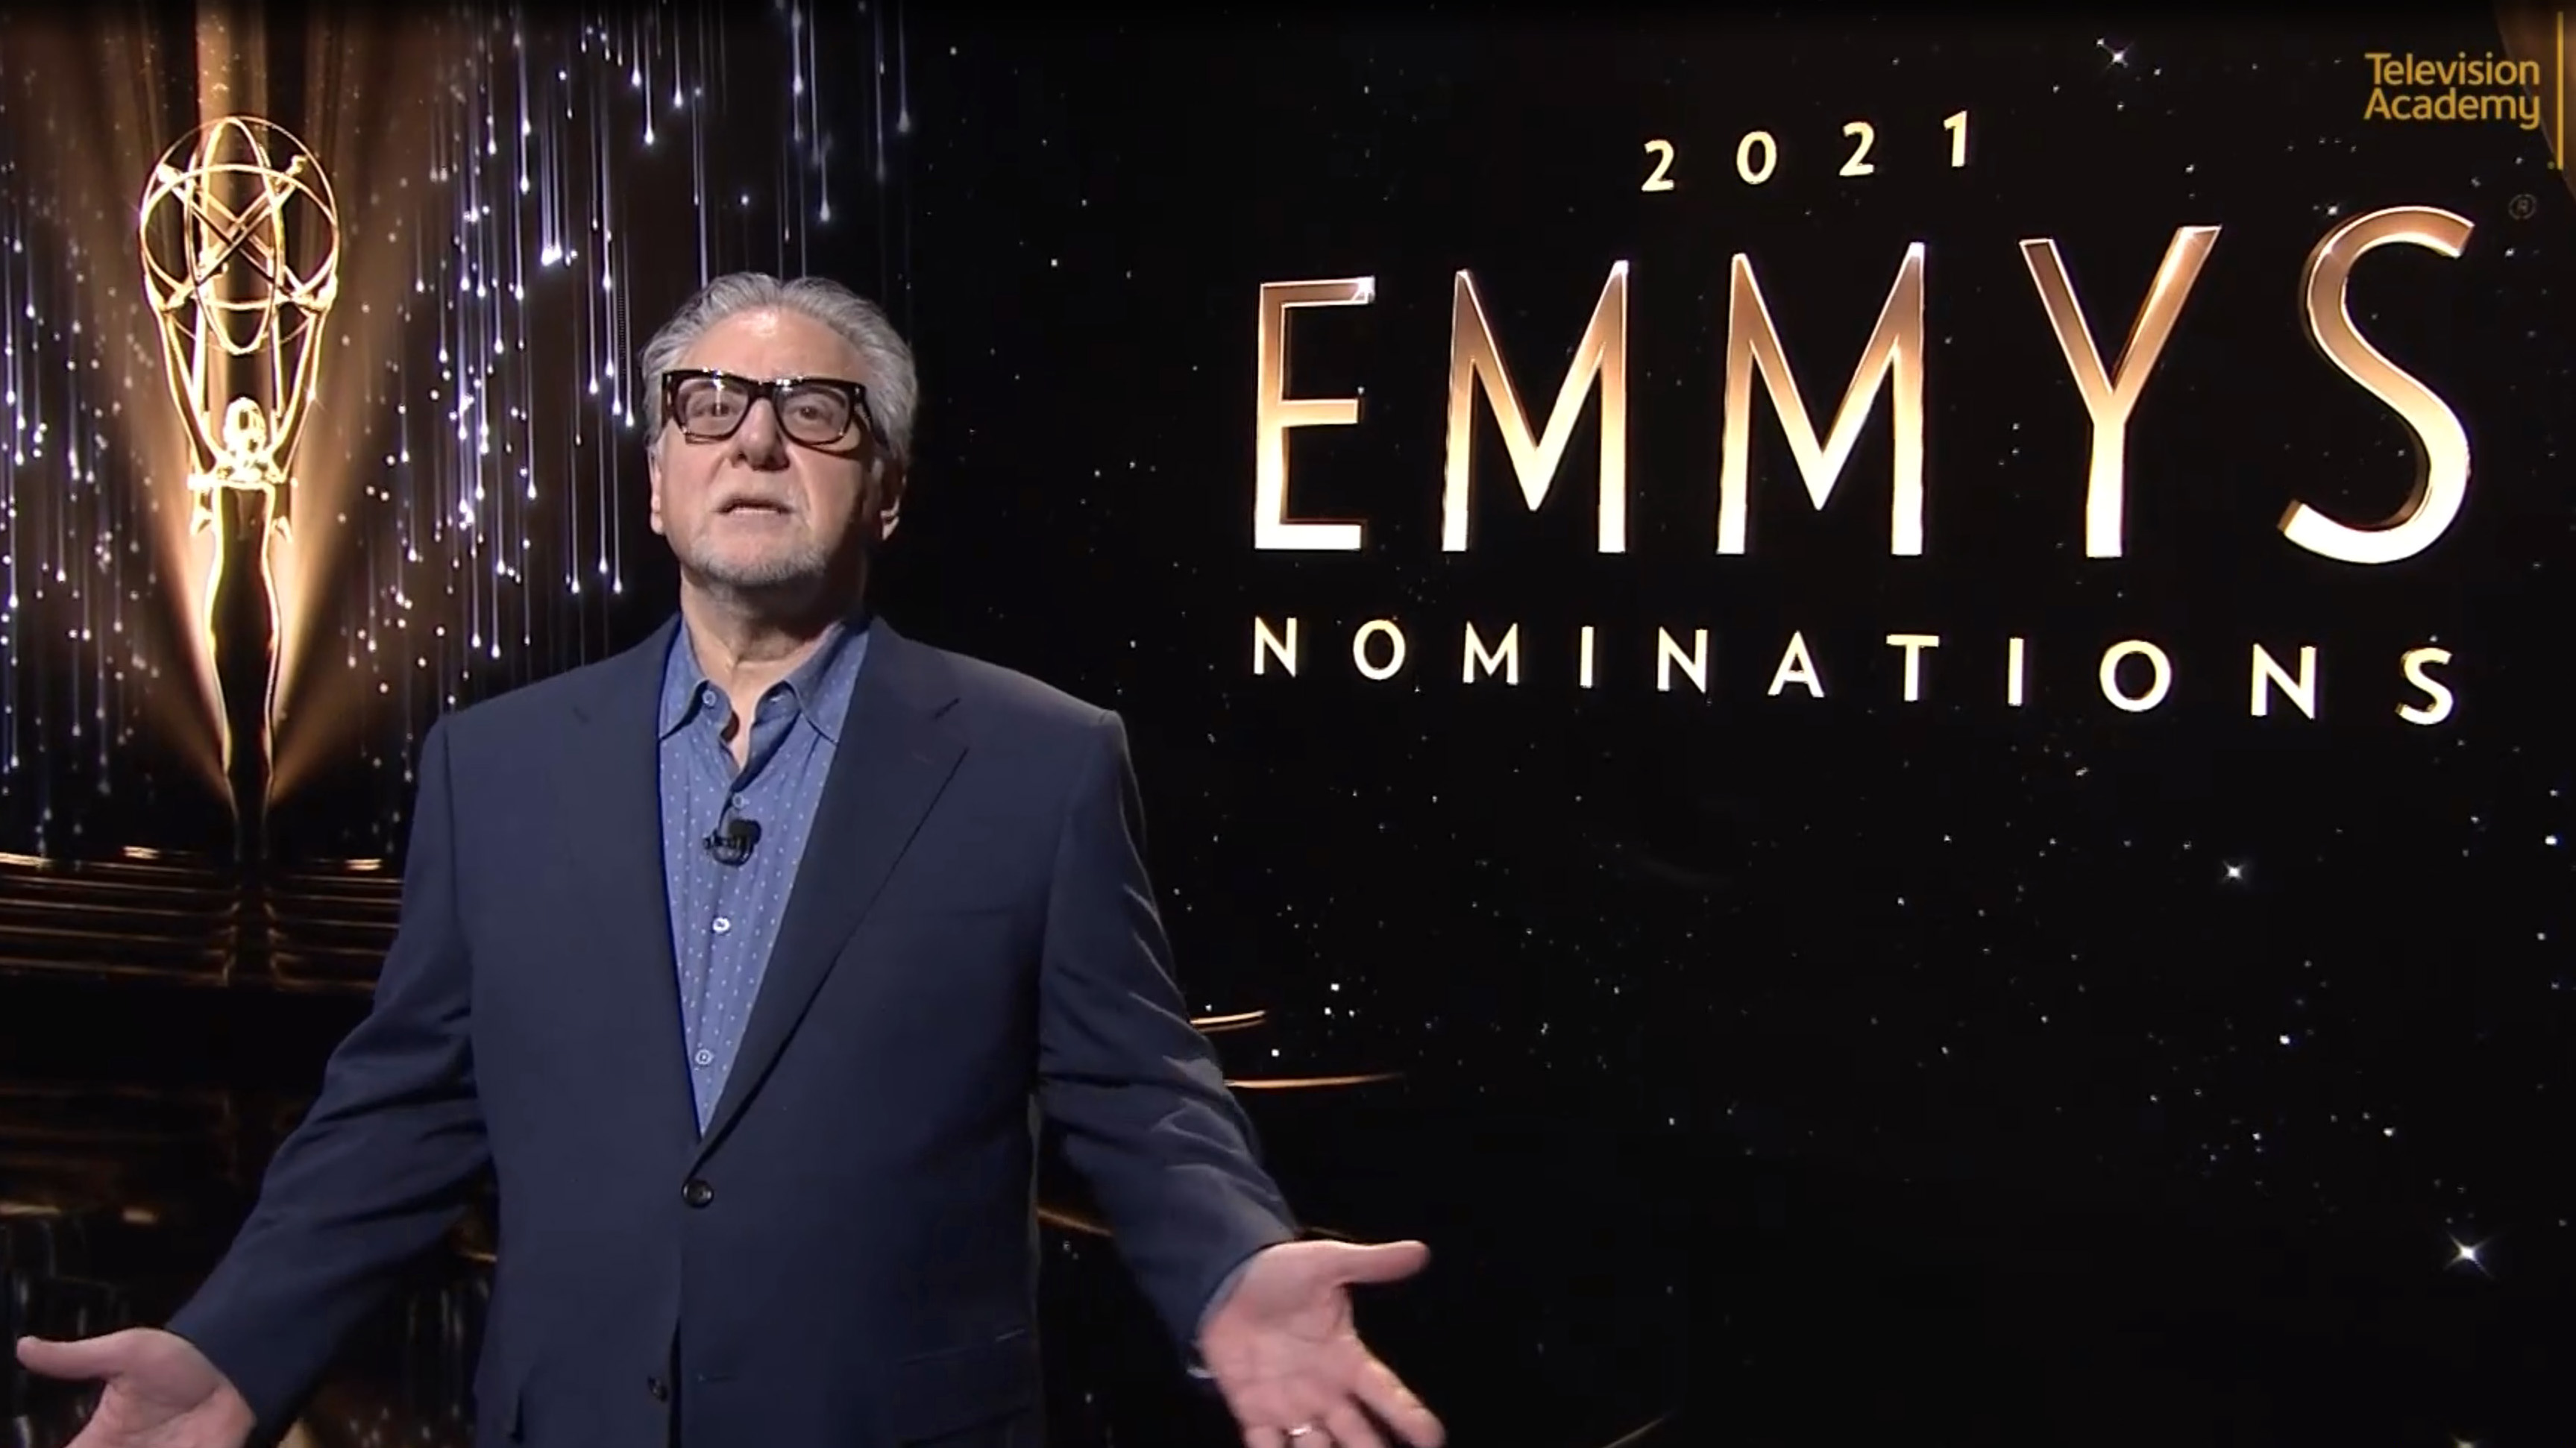 Television Academy Chairman and CEO Frank Scherma speaks during the 2021 Primetime Emmy Nominations Announcement on July 13, 2021.